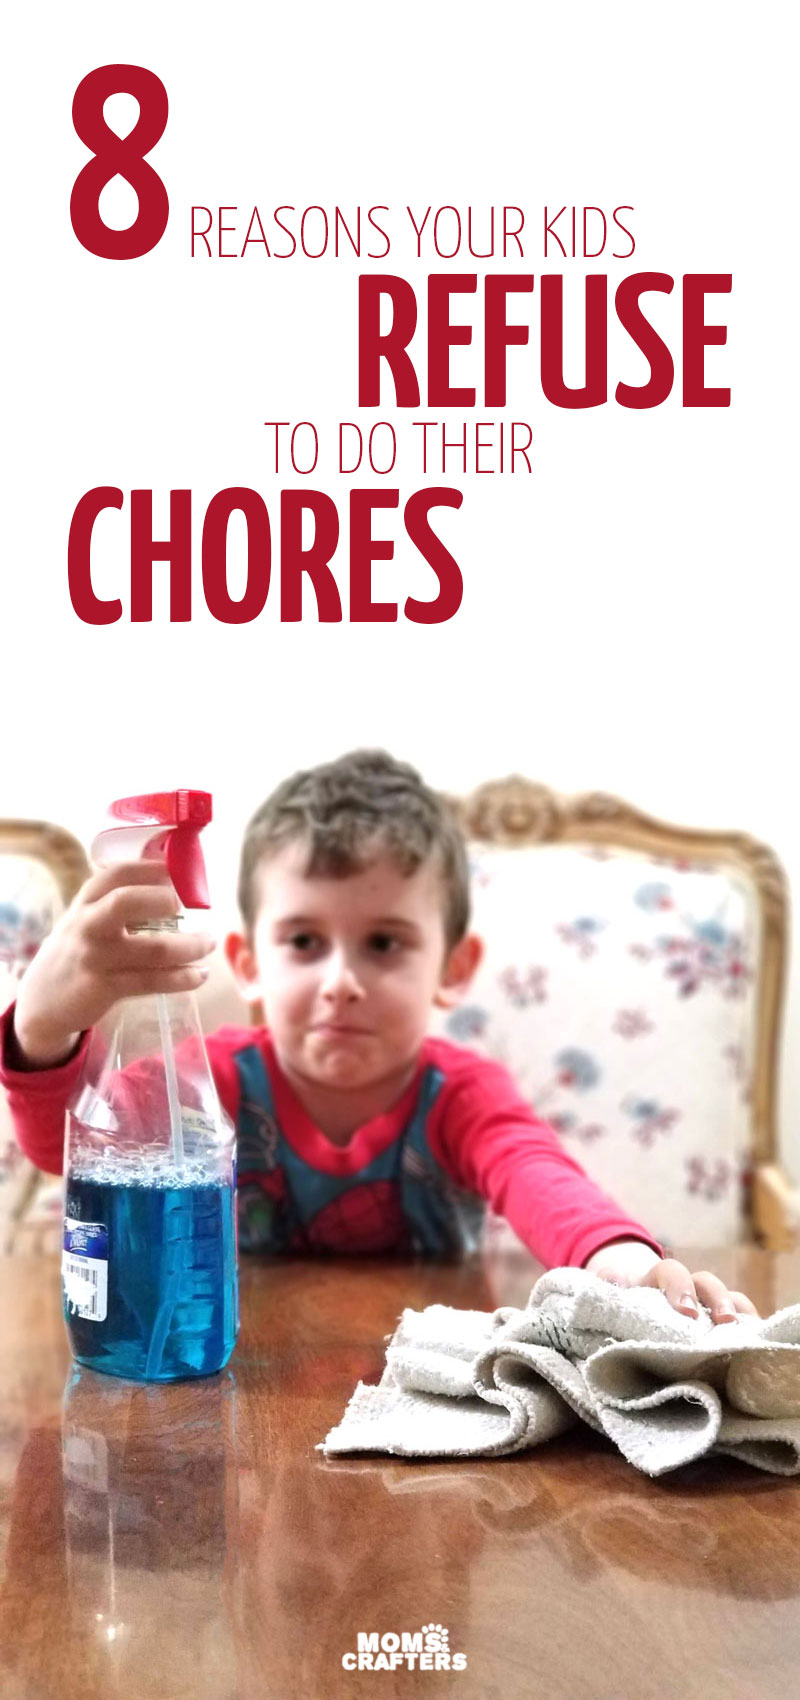 Learn how to get kids to do chores with some easy parenting tips and tricks - beyond reward charts and chore charts! Great tips for cleaning up for toddlers and preschoolers.